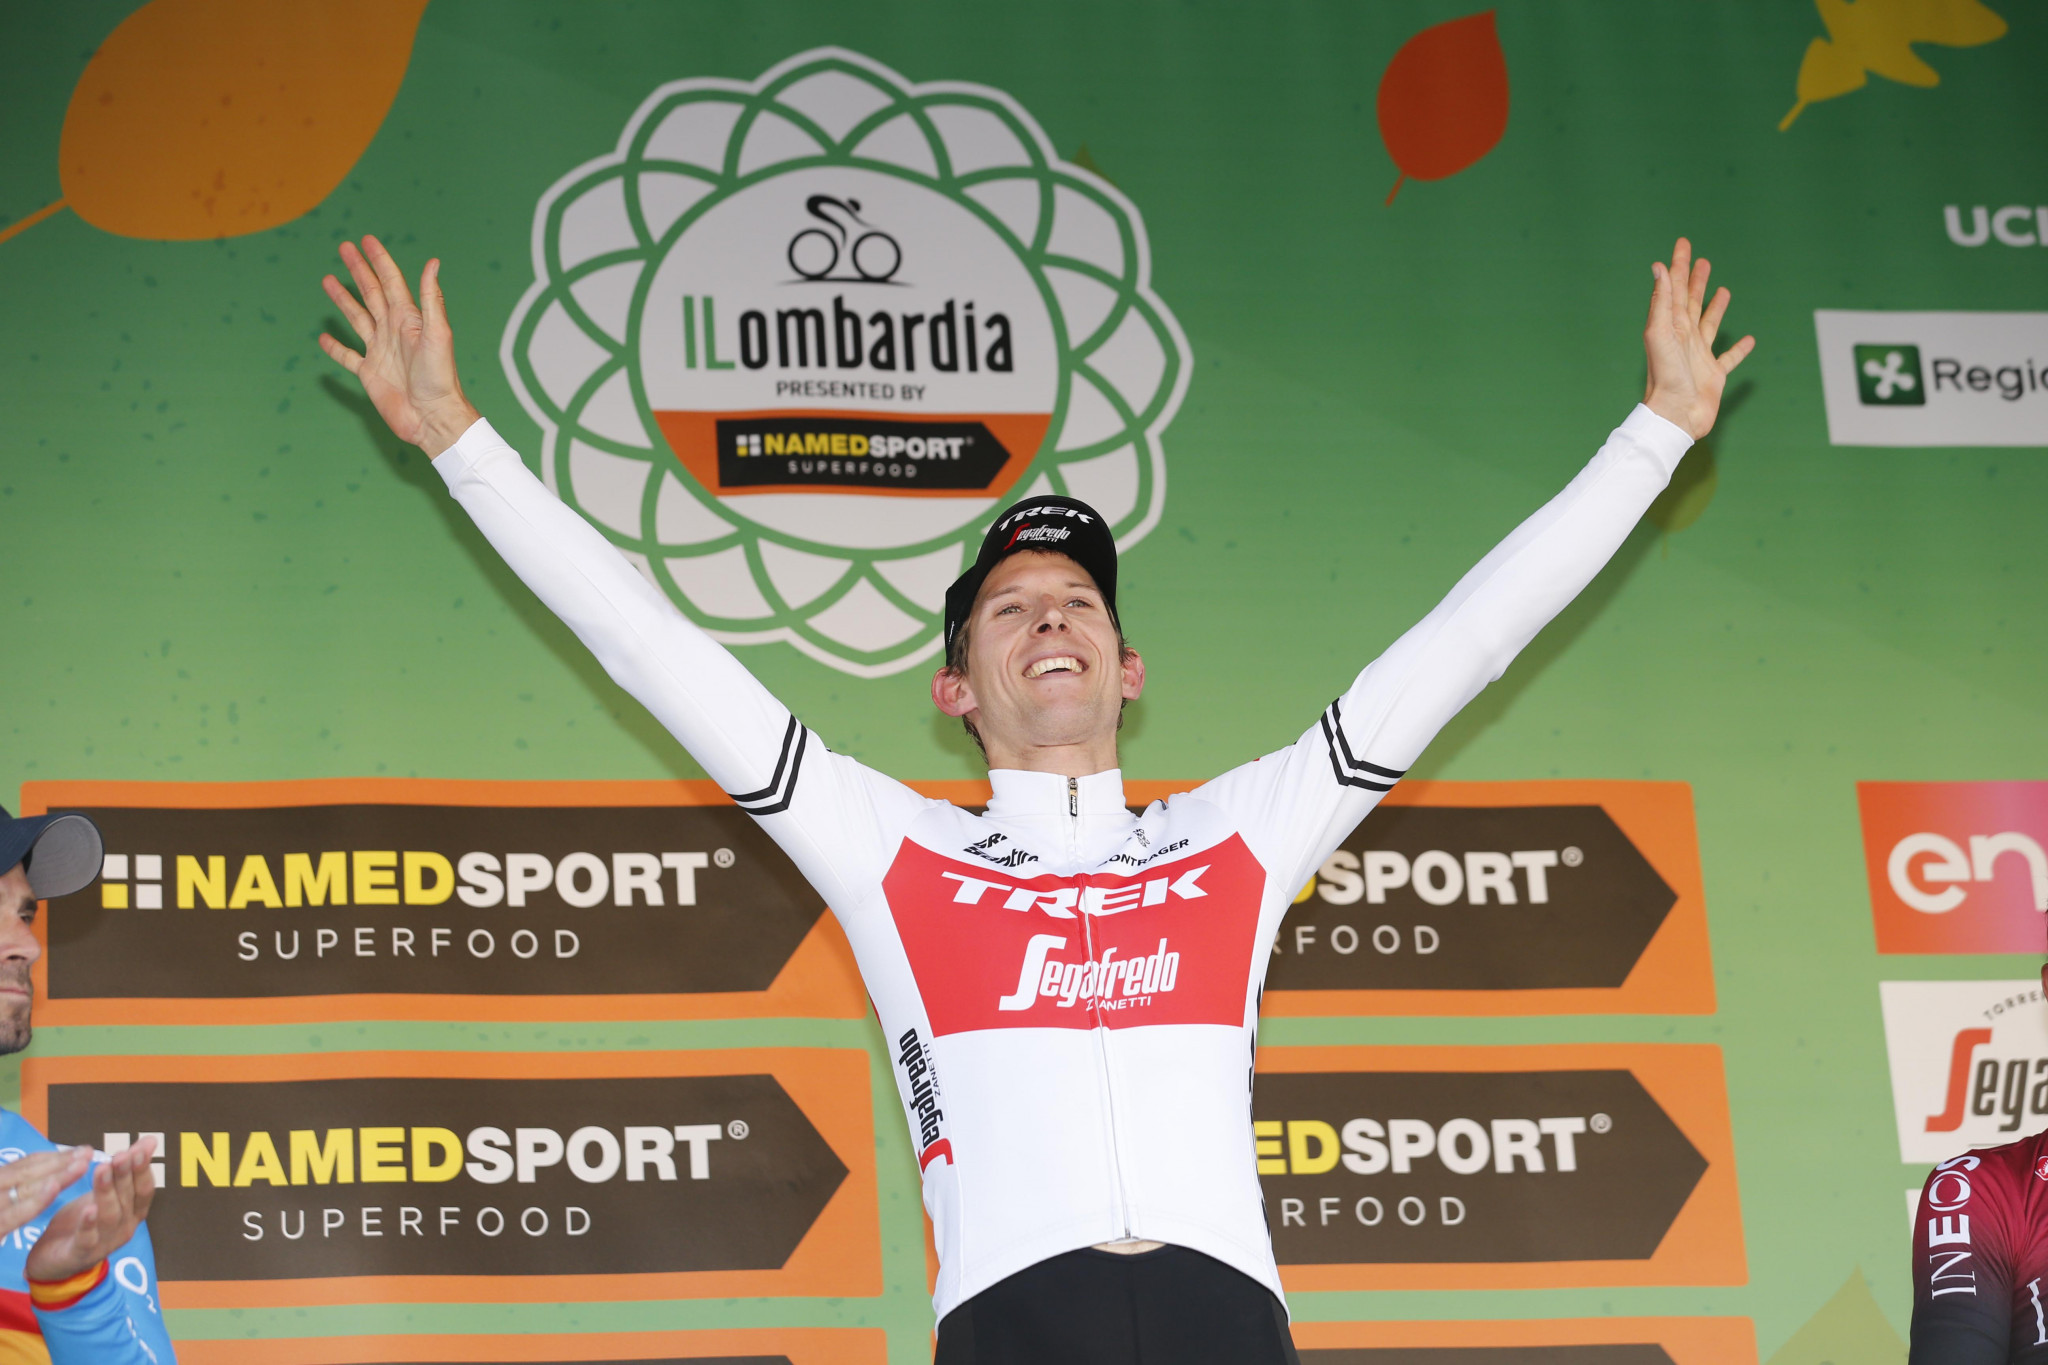 Defending champion Mollema among starters at Il Lombardia